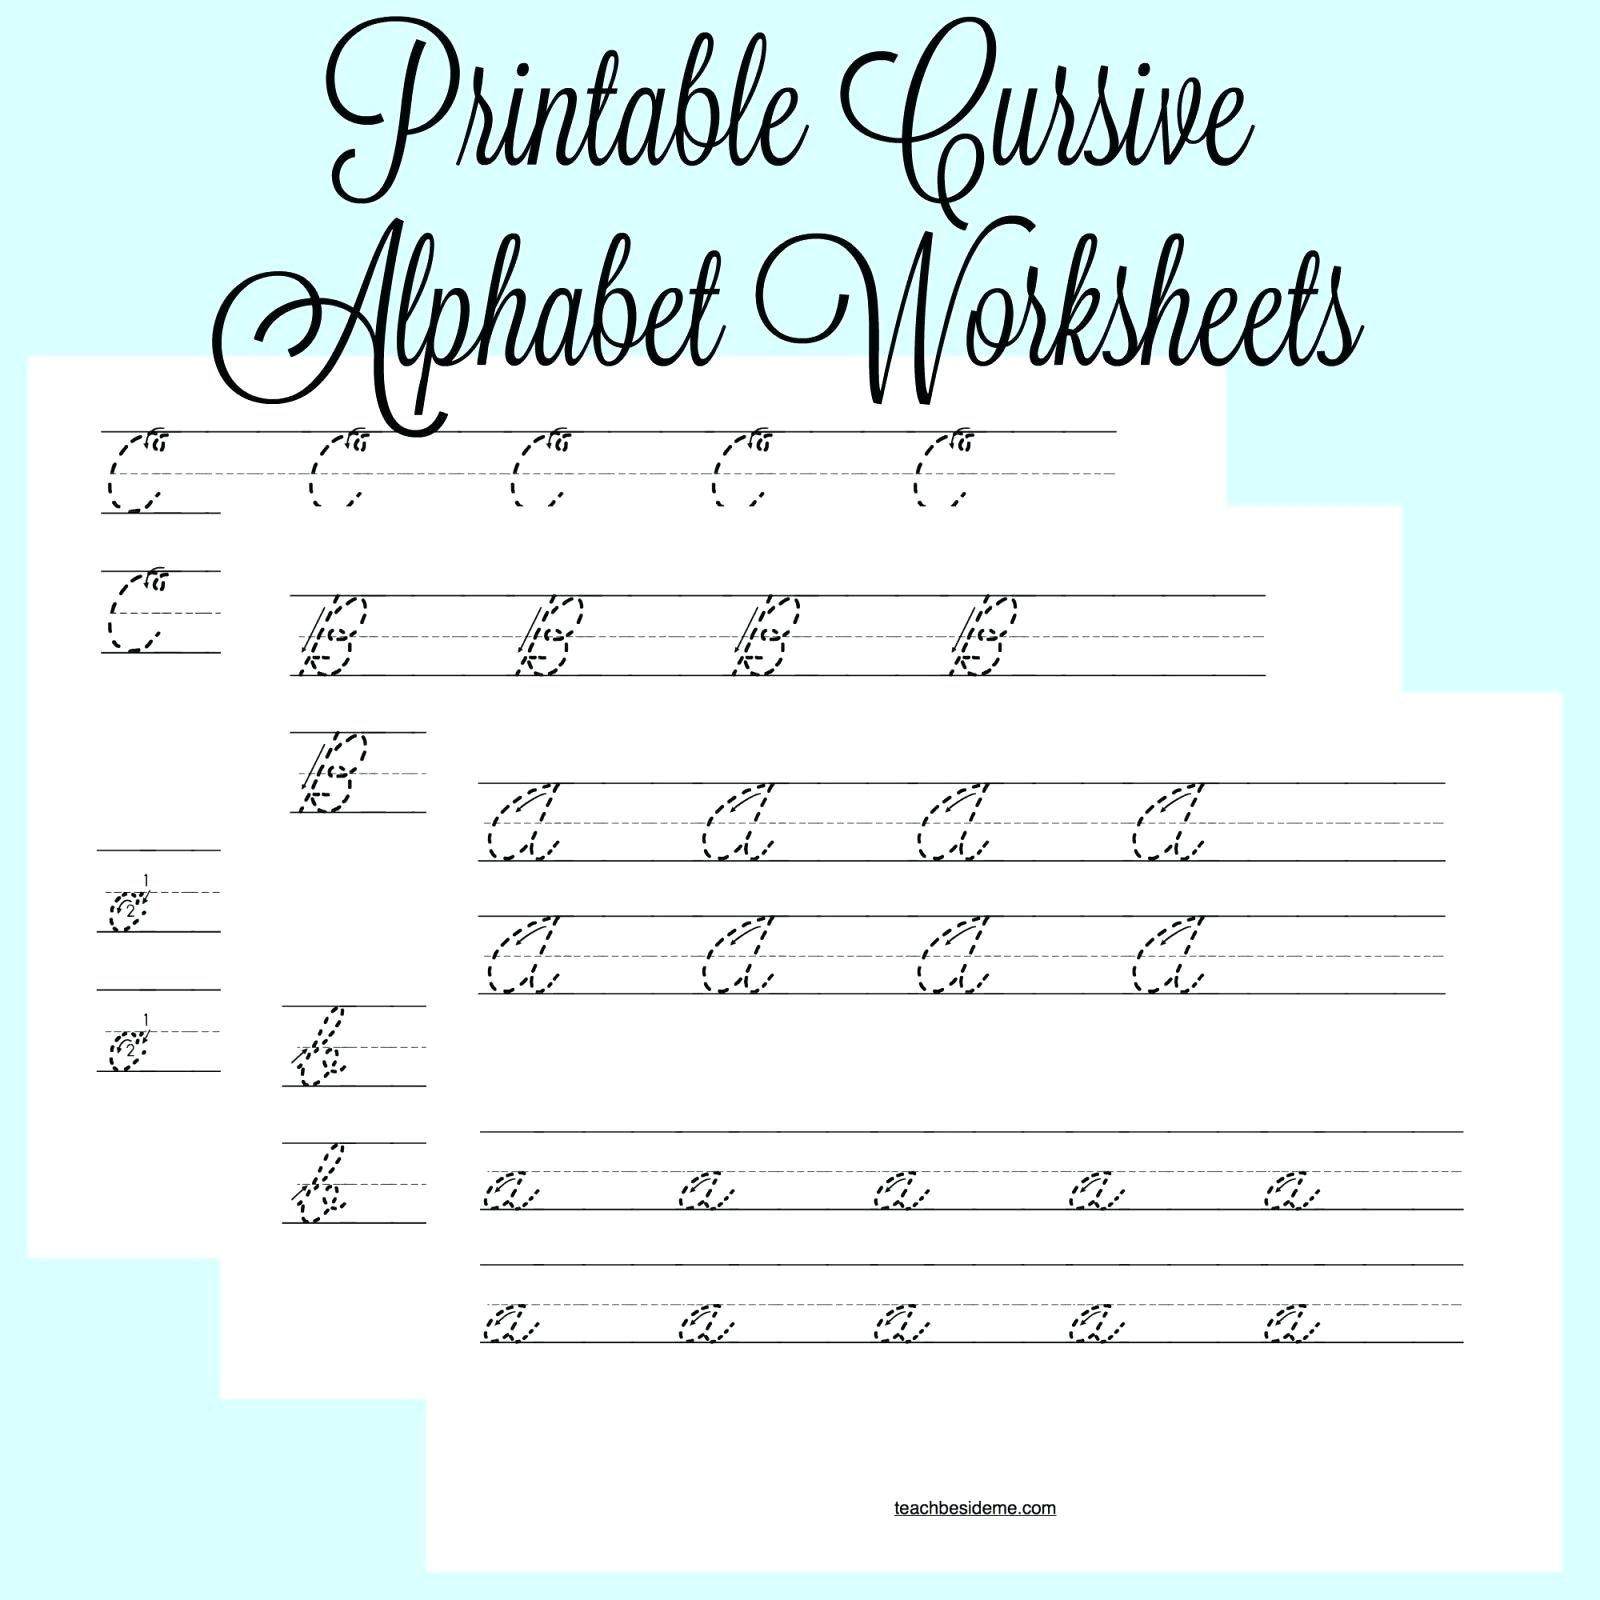 Cursive Writing Alphabets Worksheets – Shoppingfoorme.club | Cursive Writing Worksheets Printable Capital Letters